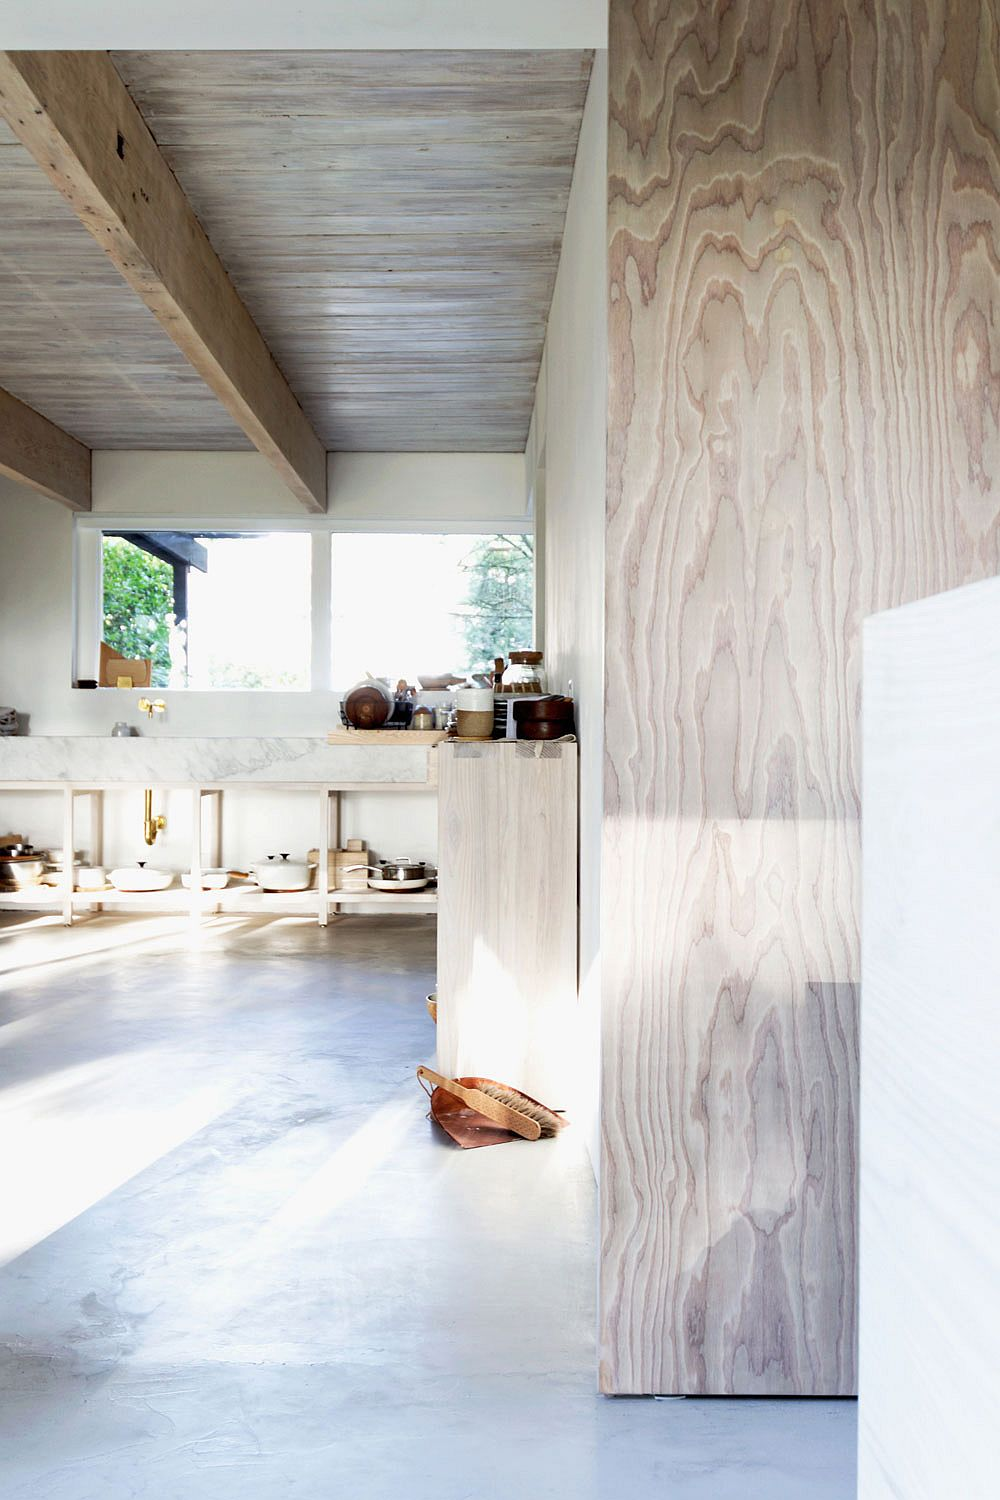 Marble kitchen workstation adds contrast to the interior